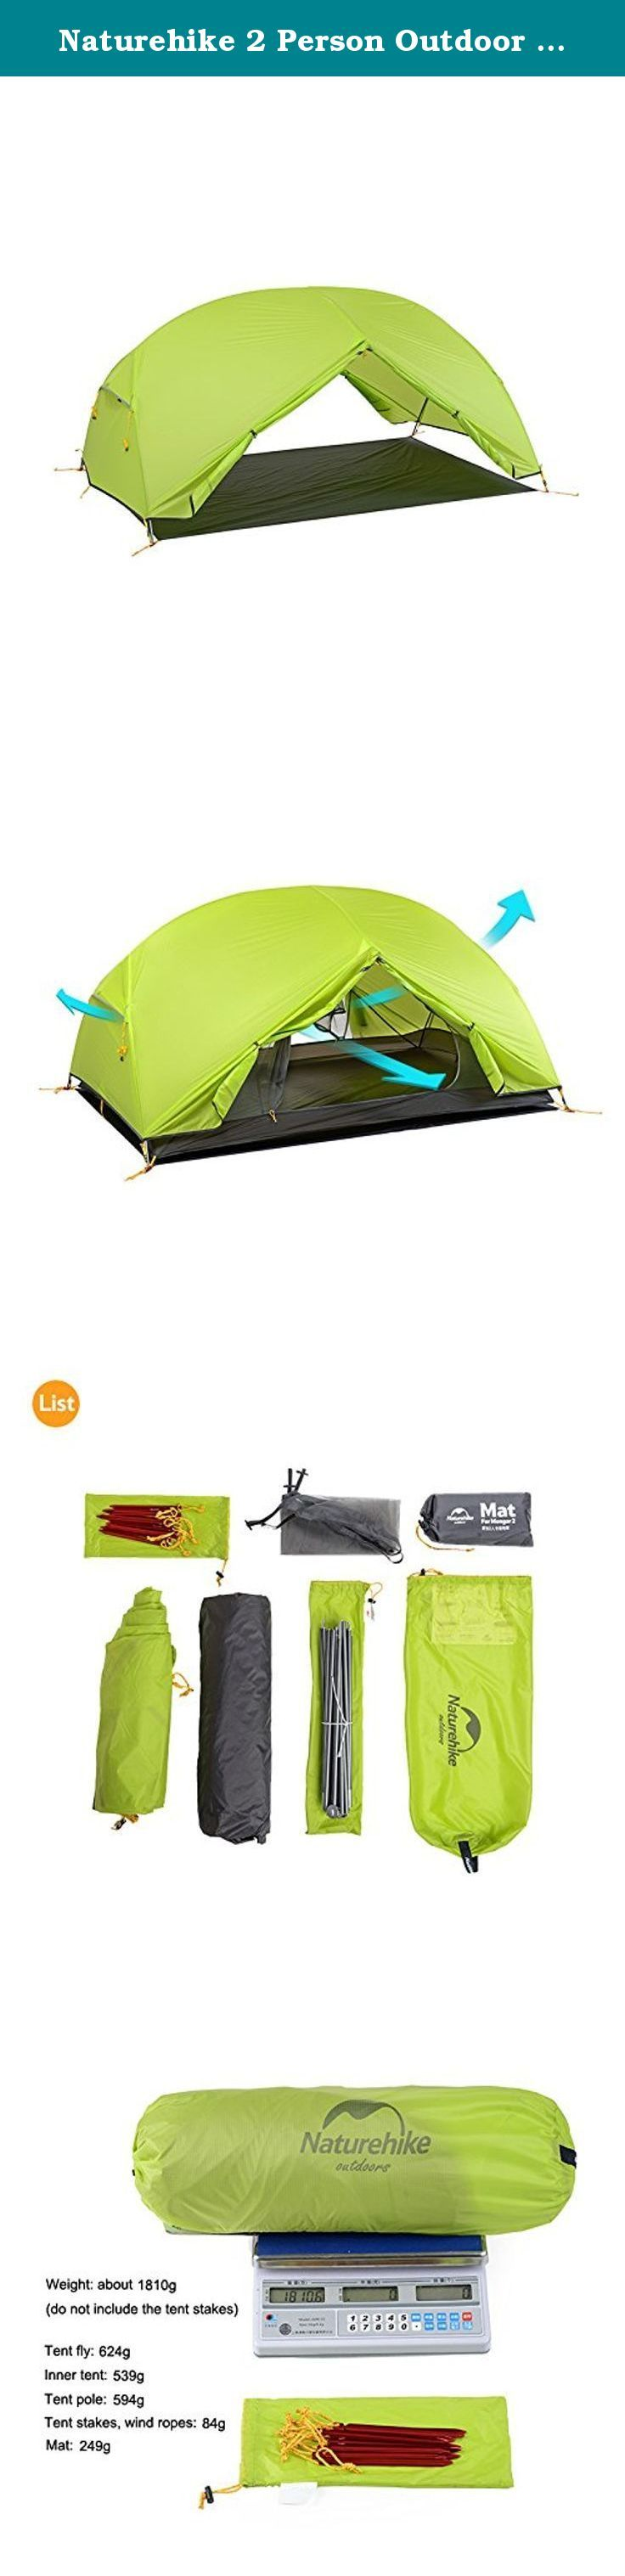 Naturehike 2 Person Outdoor Camping Tent Double-layer Waterproof 3 Season Tent(Green). Brand: Naturehike Model: NH17T006-T Capacity: 1-2 Person Color: Purple,Green,Gray Size: (210+65+65)x125x100cm(LxWxH) Package size: 500x¦Õ150mm Weight: about 1810g(do not include the tent stakes) Applicable seasons: 3 Season Tent fly material: 20D wire grid nylon plaids Tent fly waterproof index: PU waterproof coating 4000mm Inner tent material: 20D wire grid nylon plaids Mesh material: B3 breathable…